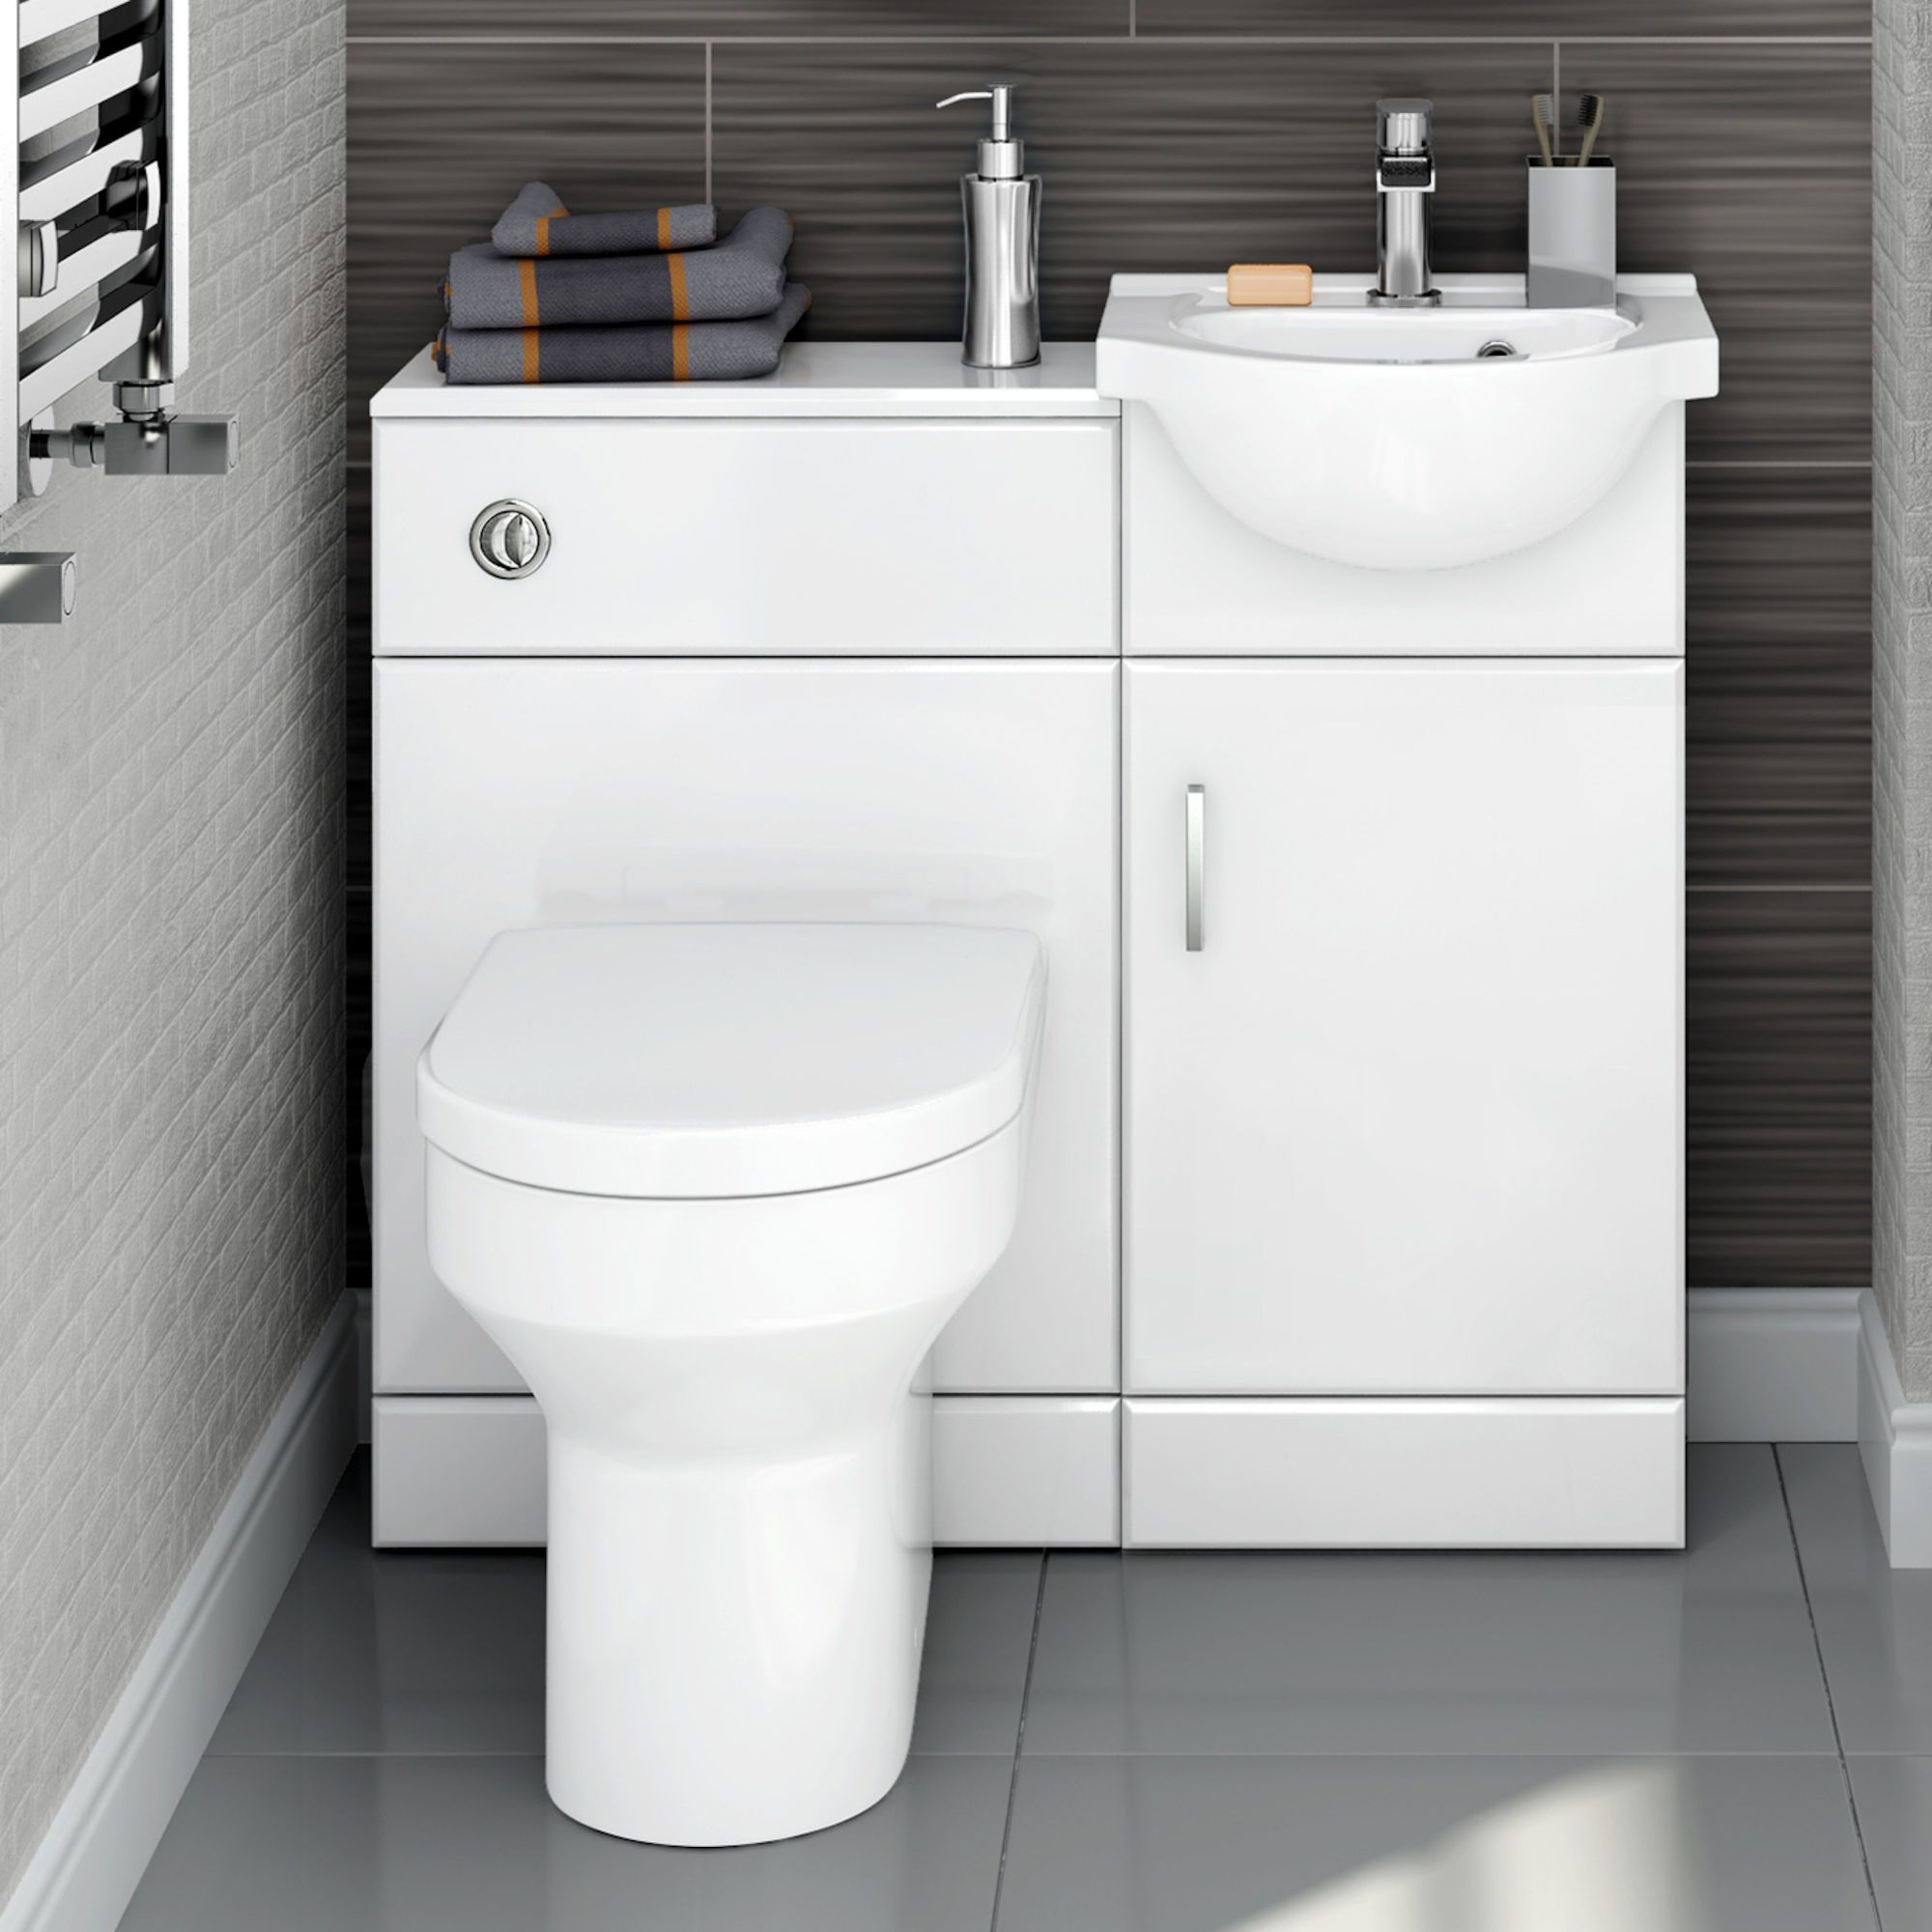 903mm Quartz Gloss White Combined Suite With Toilet Basin